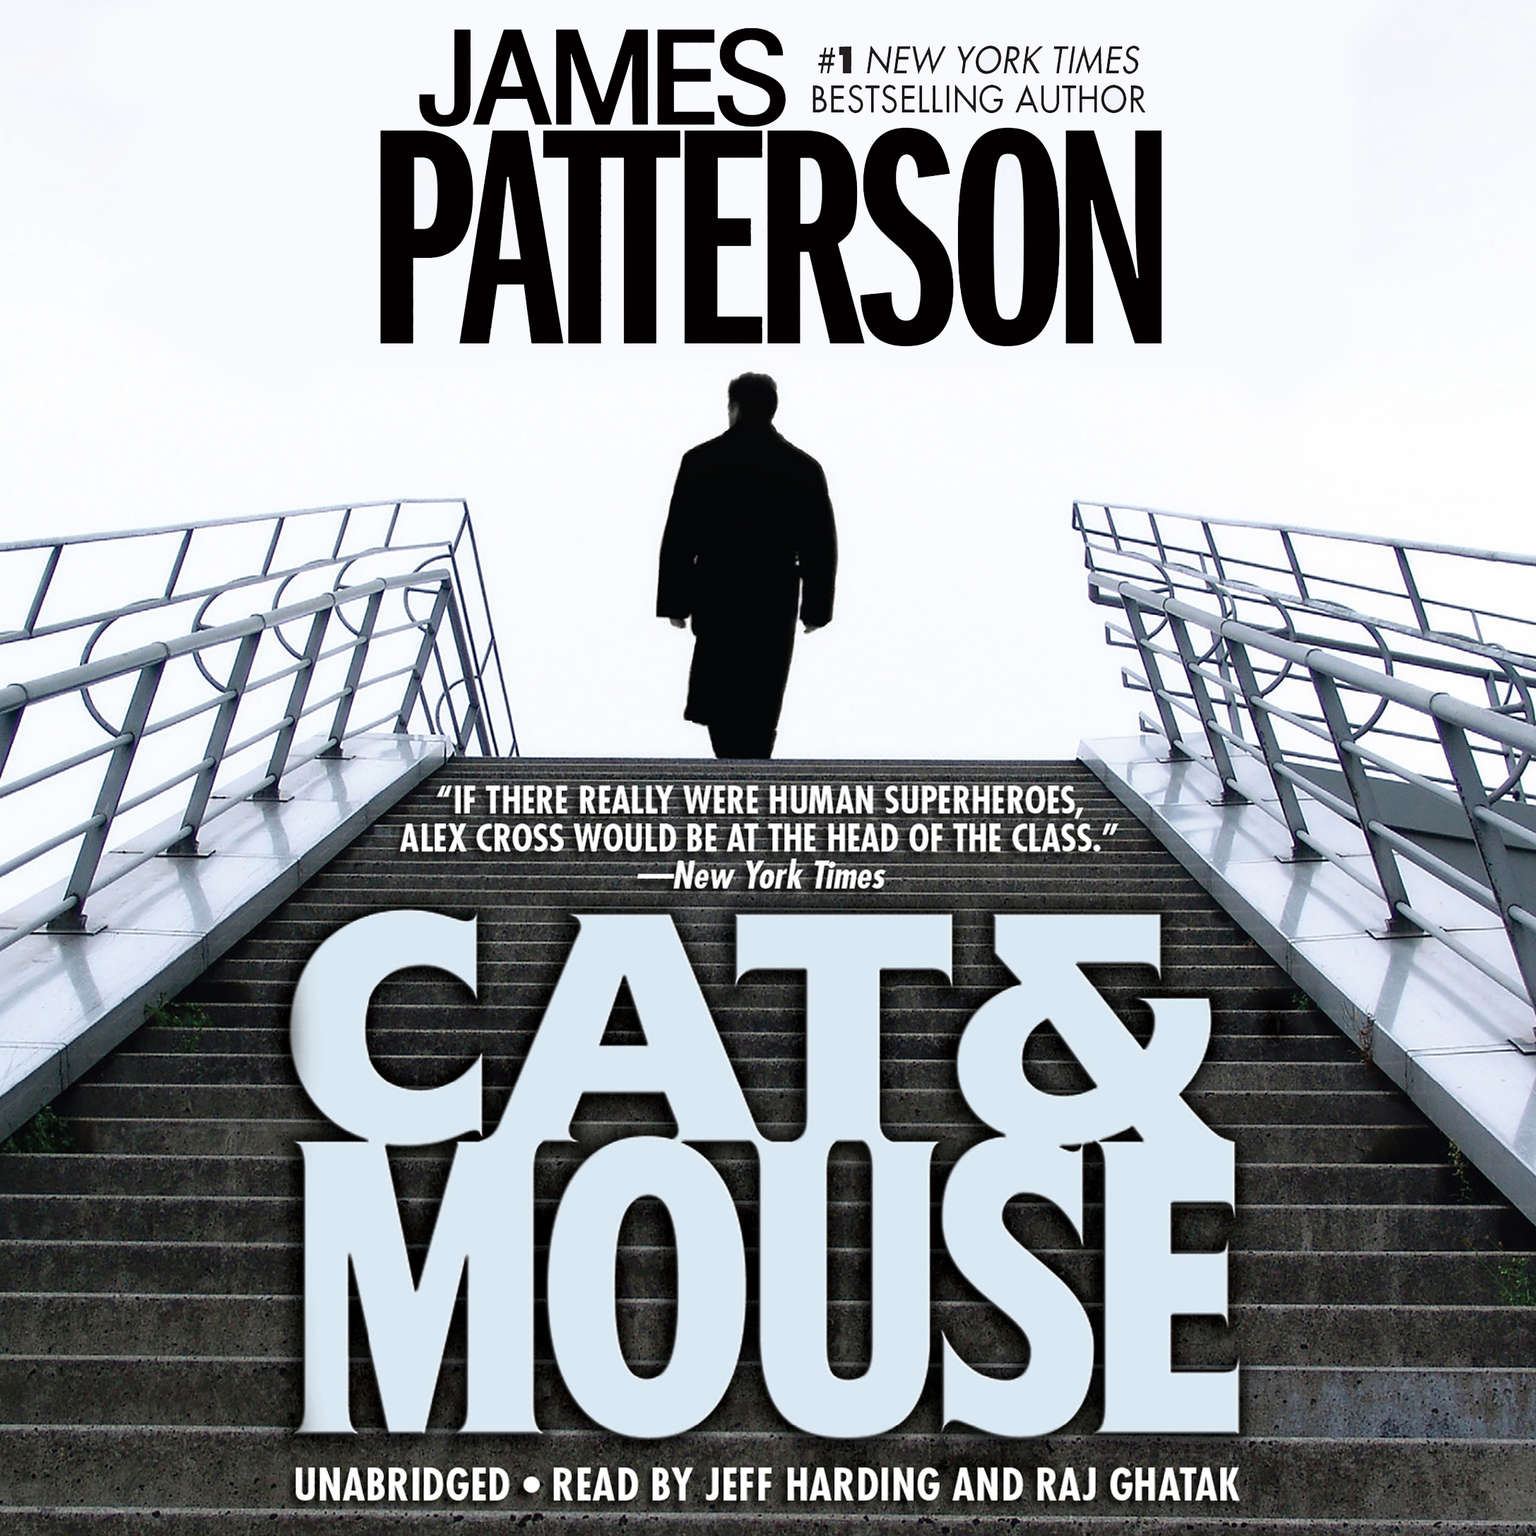 Printable Cat & Mouse Audiobook Cover Art